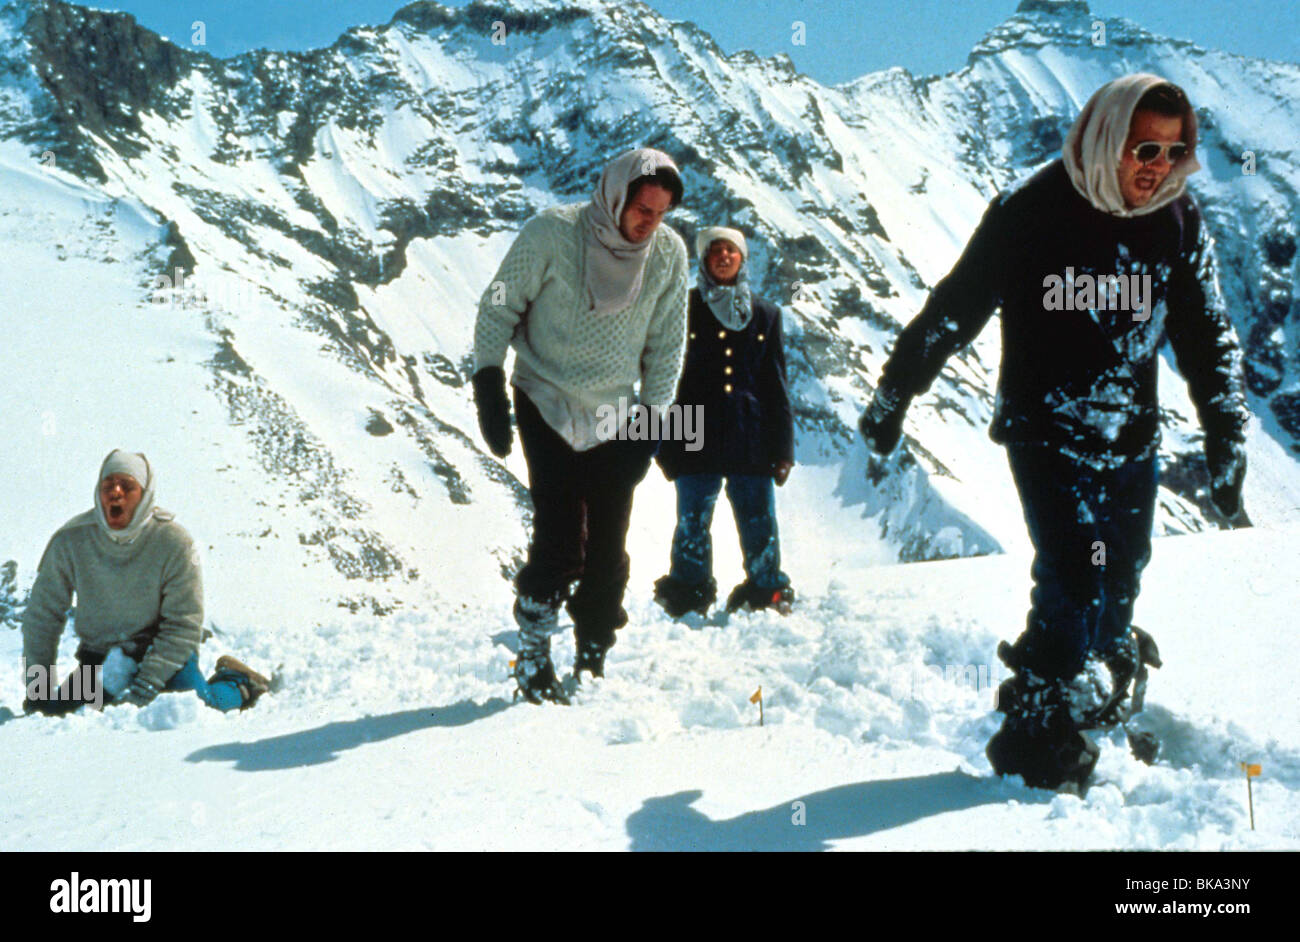 alive 1993 full hd movie download